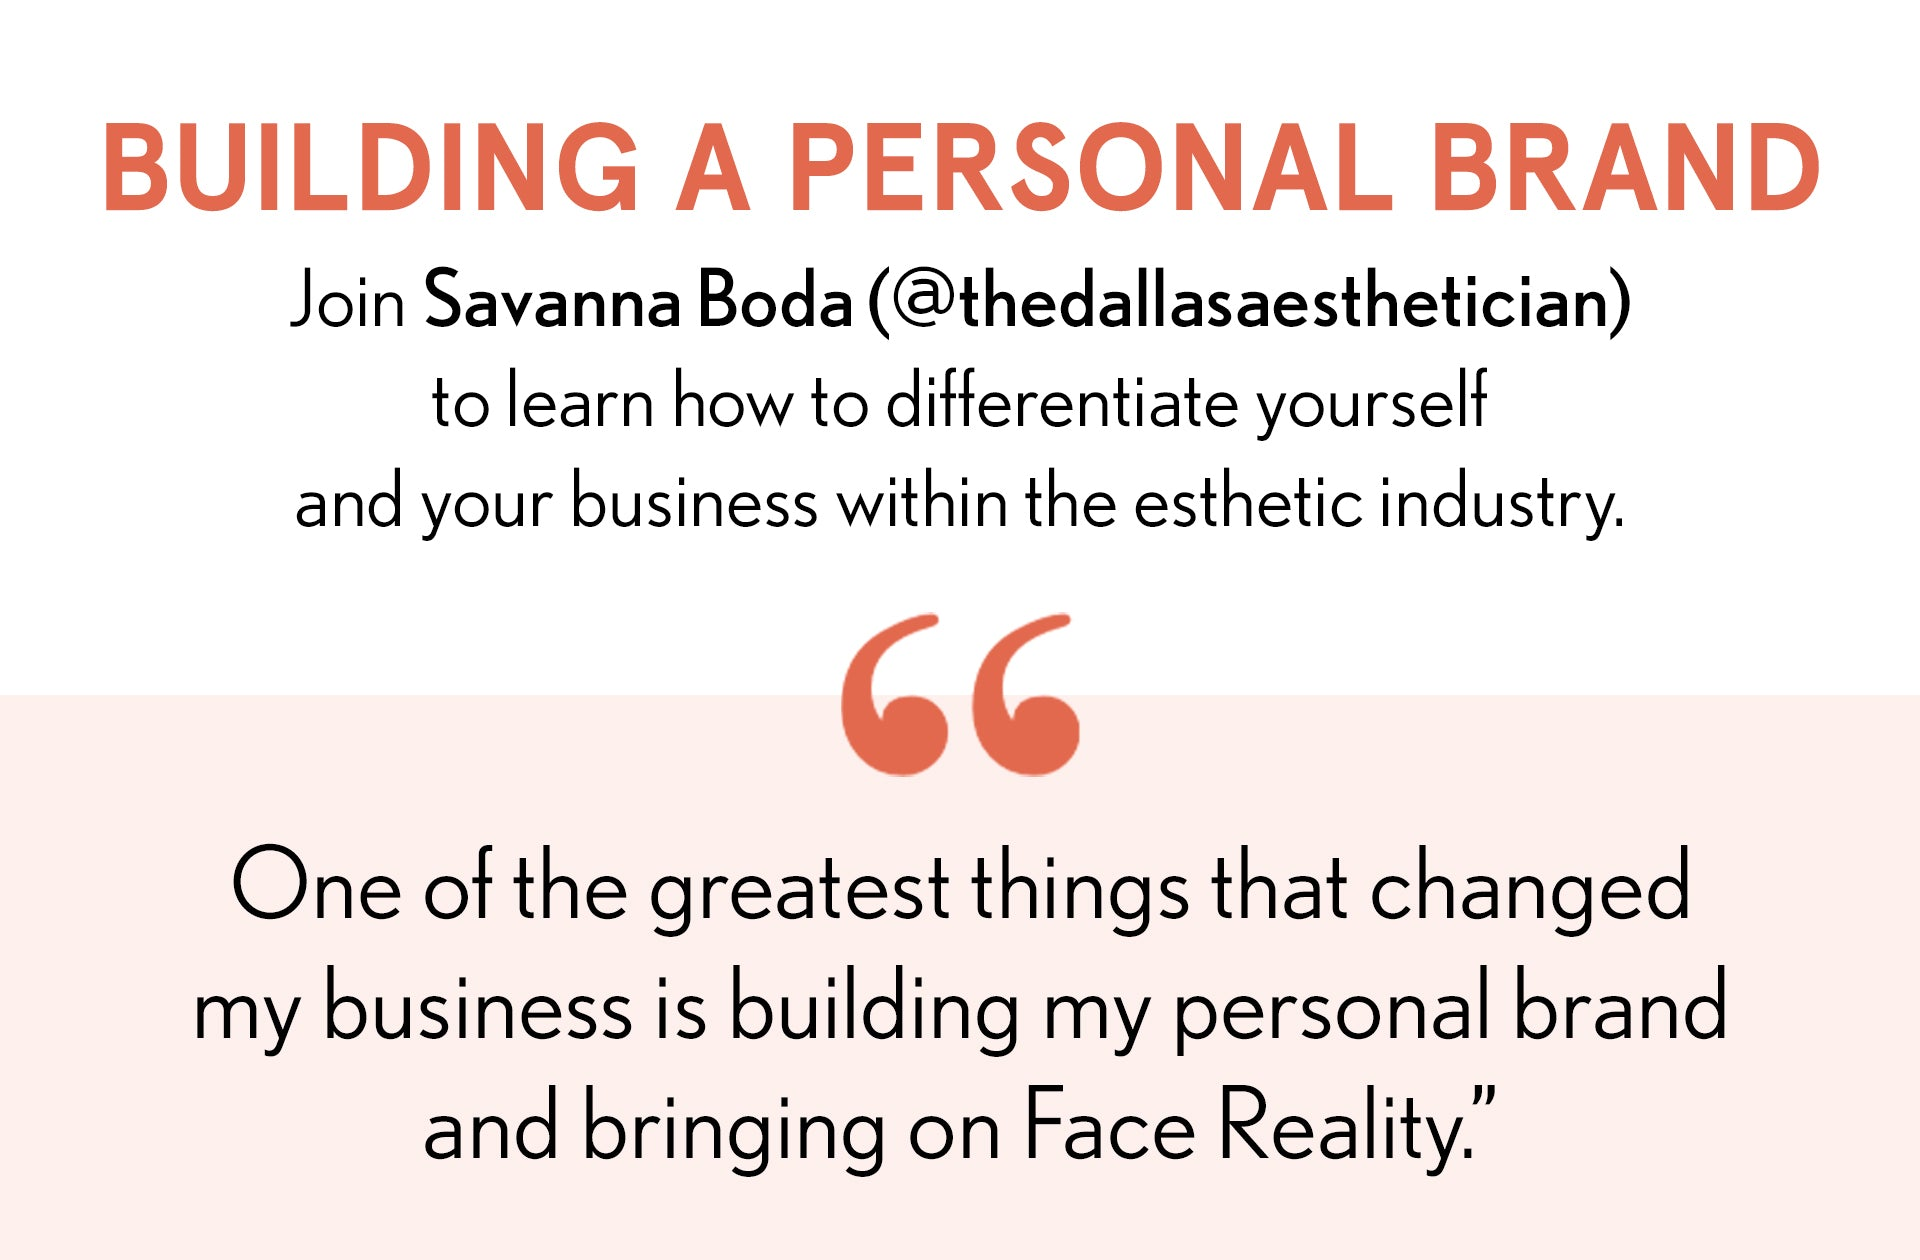 Building a Personal Brand. Join Savanna Boda (@TheDallasaesthetician) to learn how to differentiate yourself and your business within the esthetic industry. One of the greatest things that changed by business is building my personal brand and bringing on Face Reality